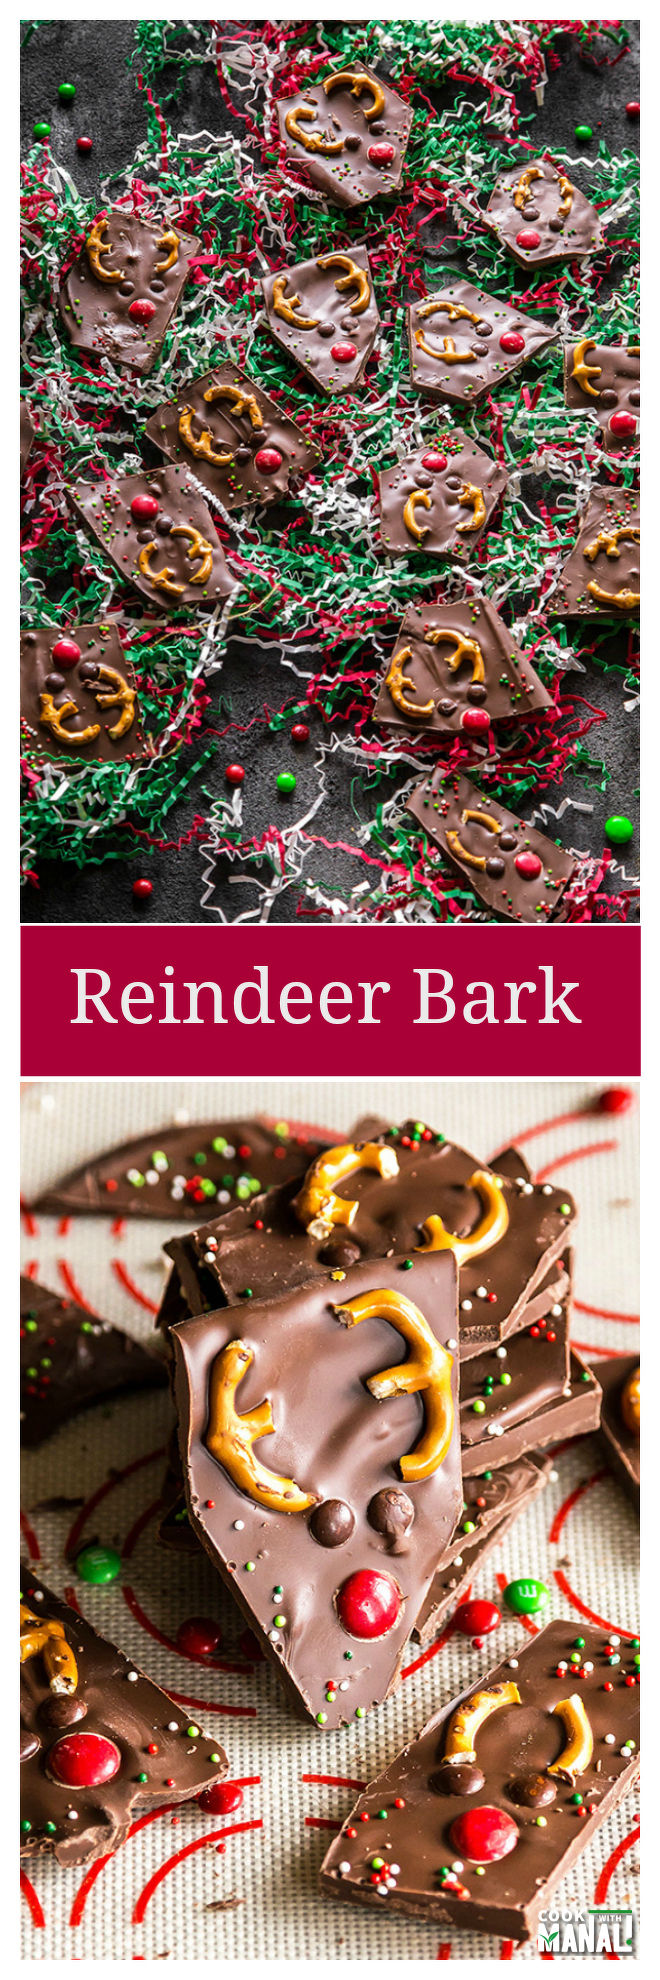 reindeer-bark-collage